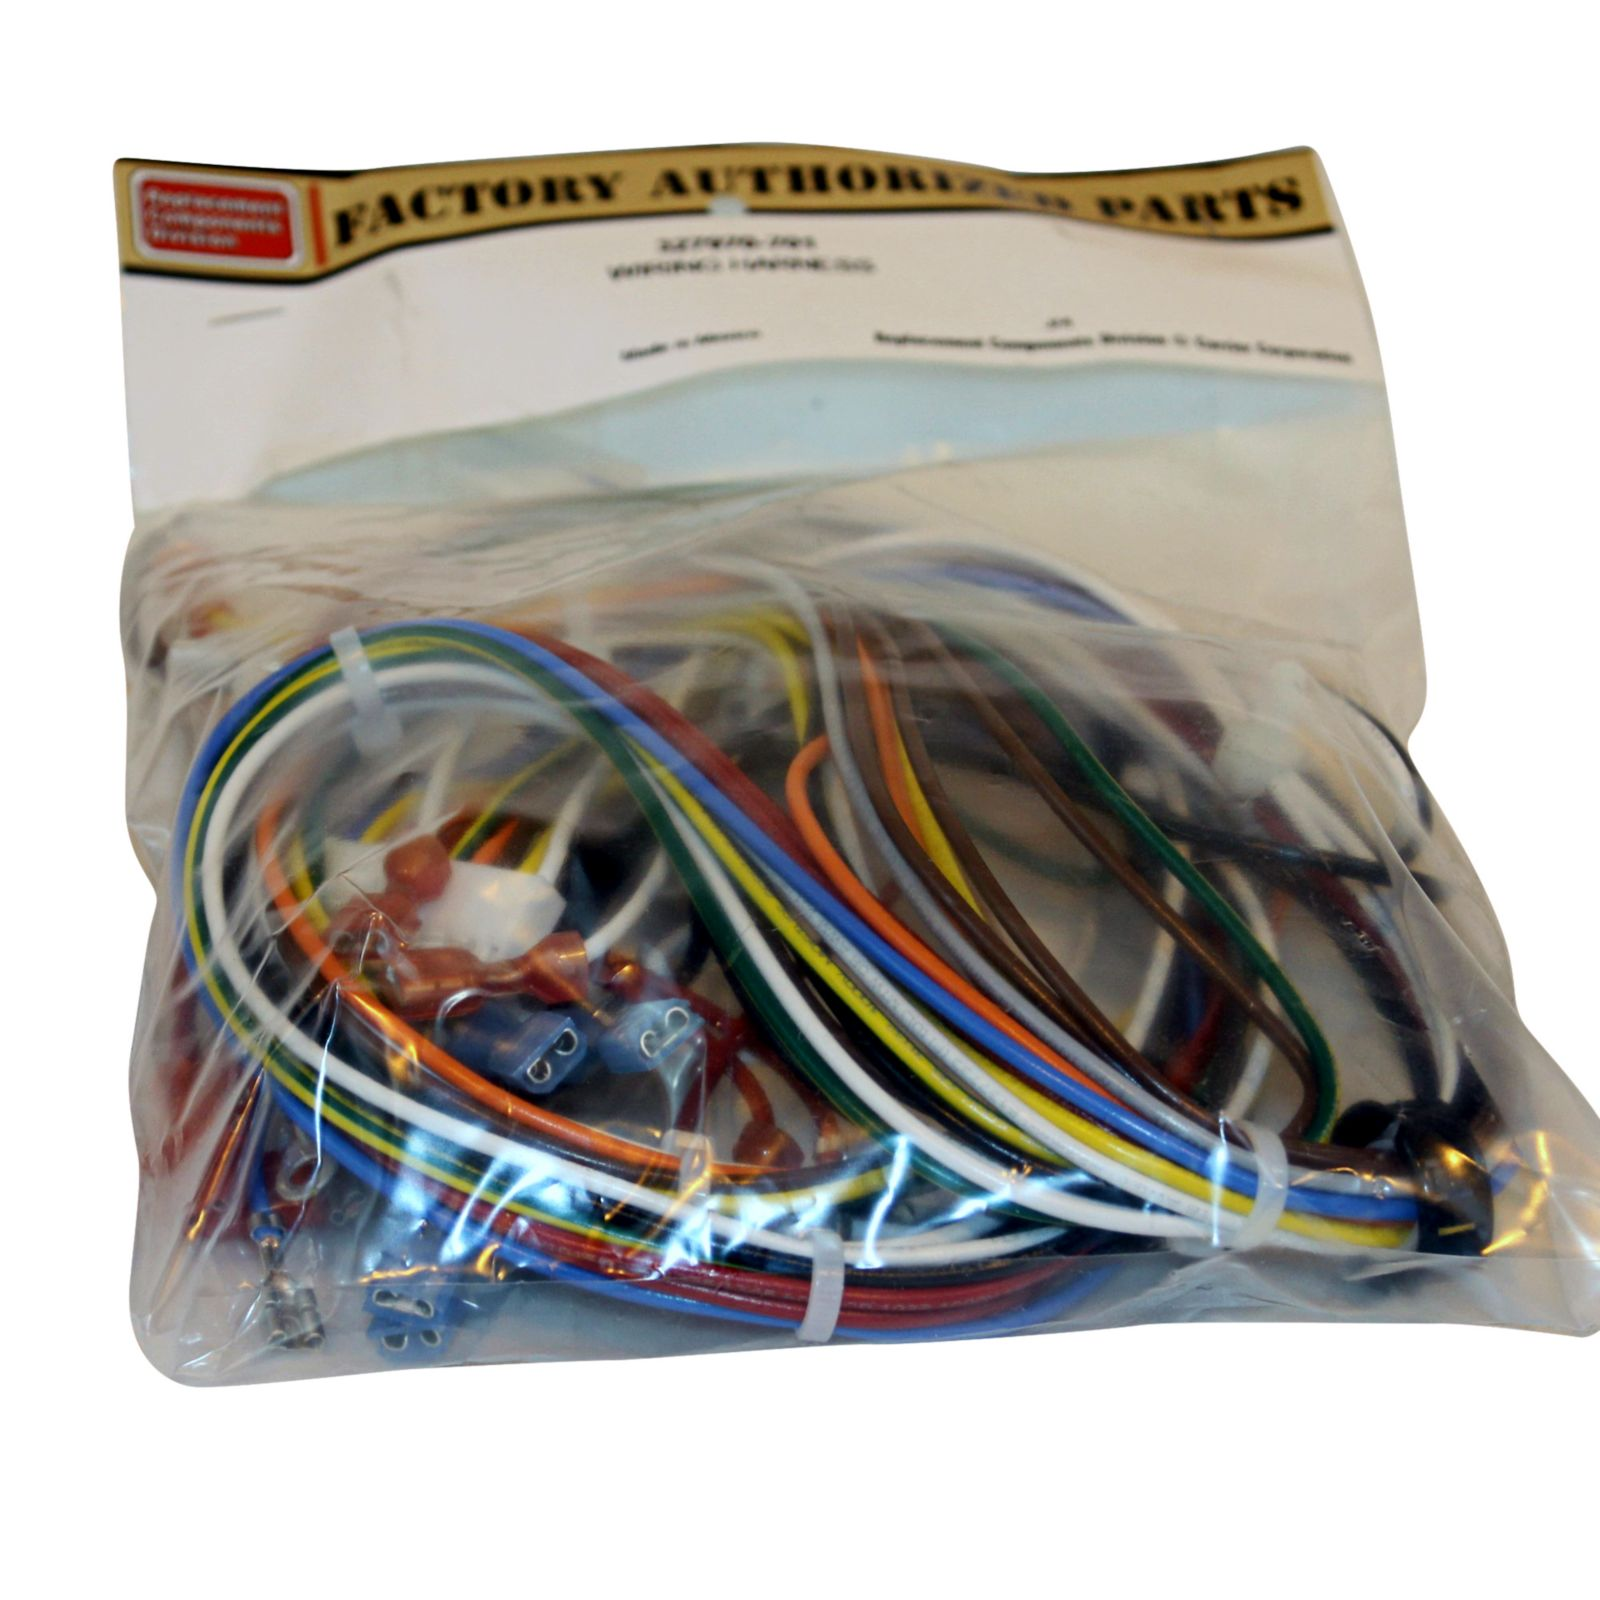 Rcd Parts 327567 701 Terminal Leads Wiring Harness Plugs Factory Authorized 327970